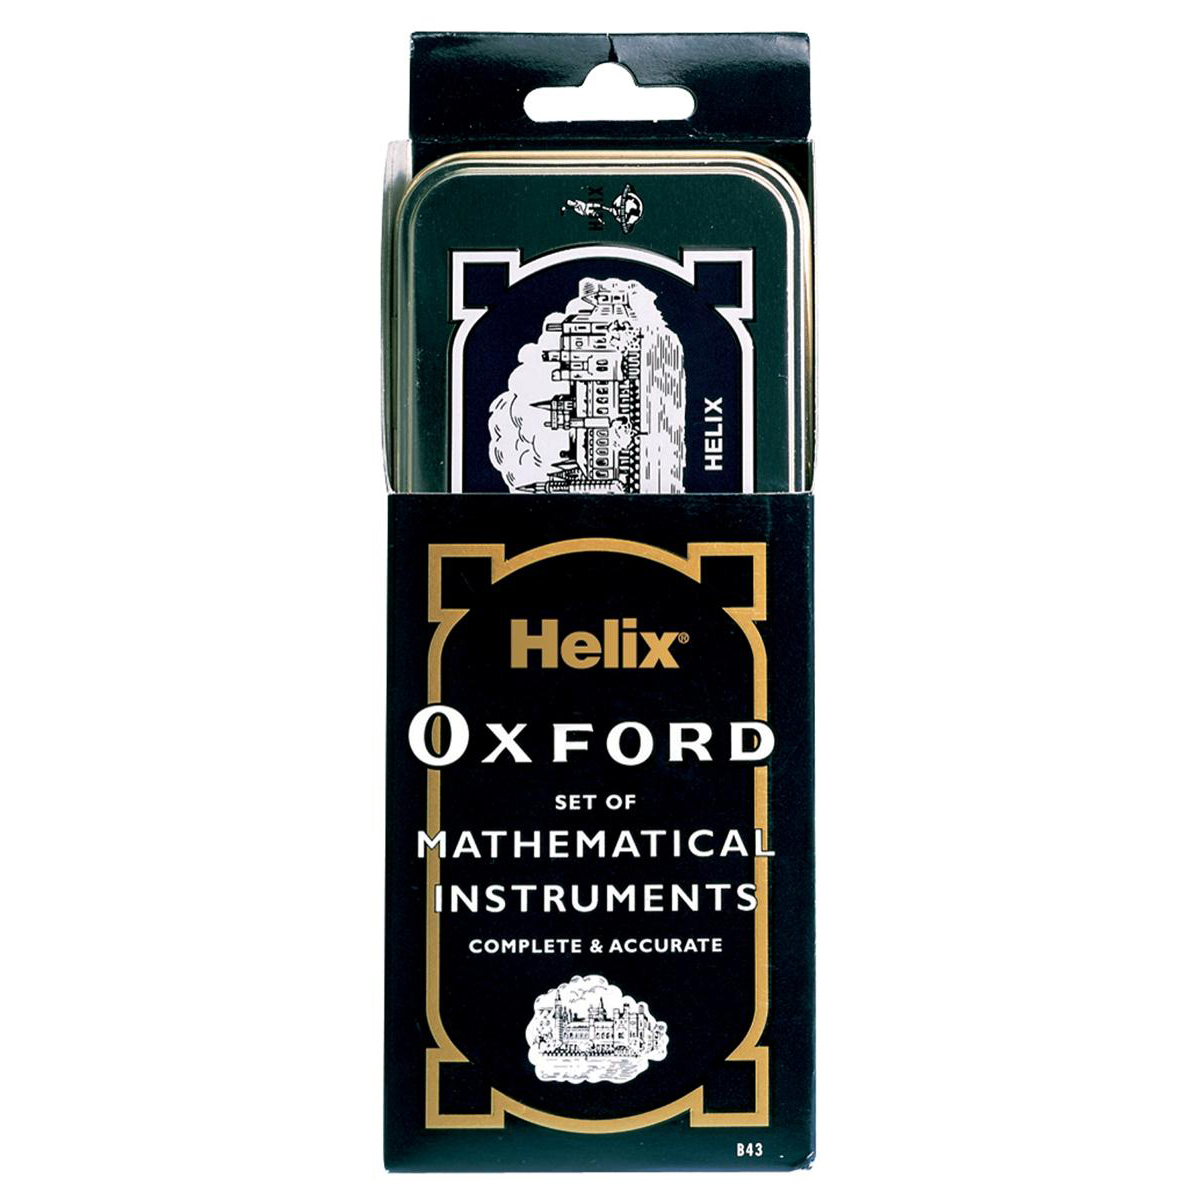 Image for Helix Oxford Maths Set includes Various Stationery Items and Storage Tin Black Ref B43000